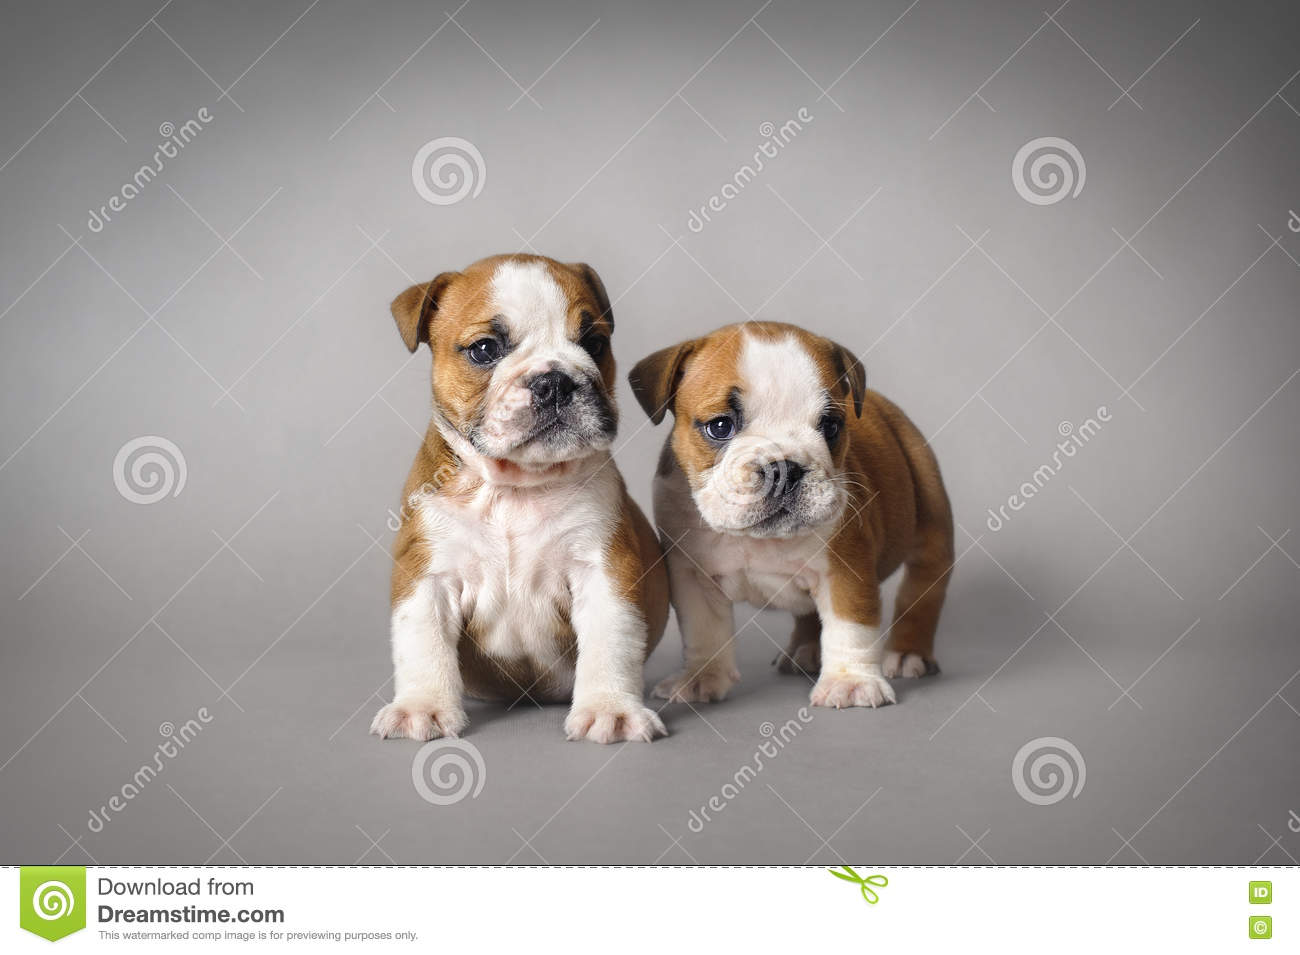 Bulldog Puppies Stock Photo Image Of Young Relationship 81457062